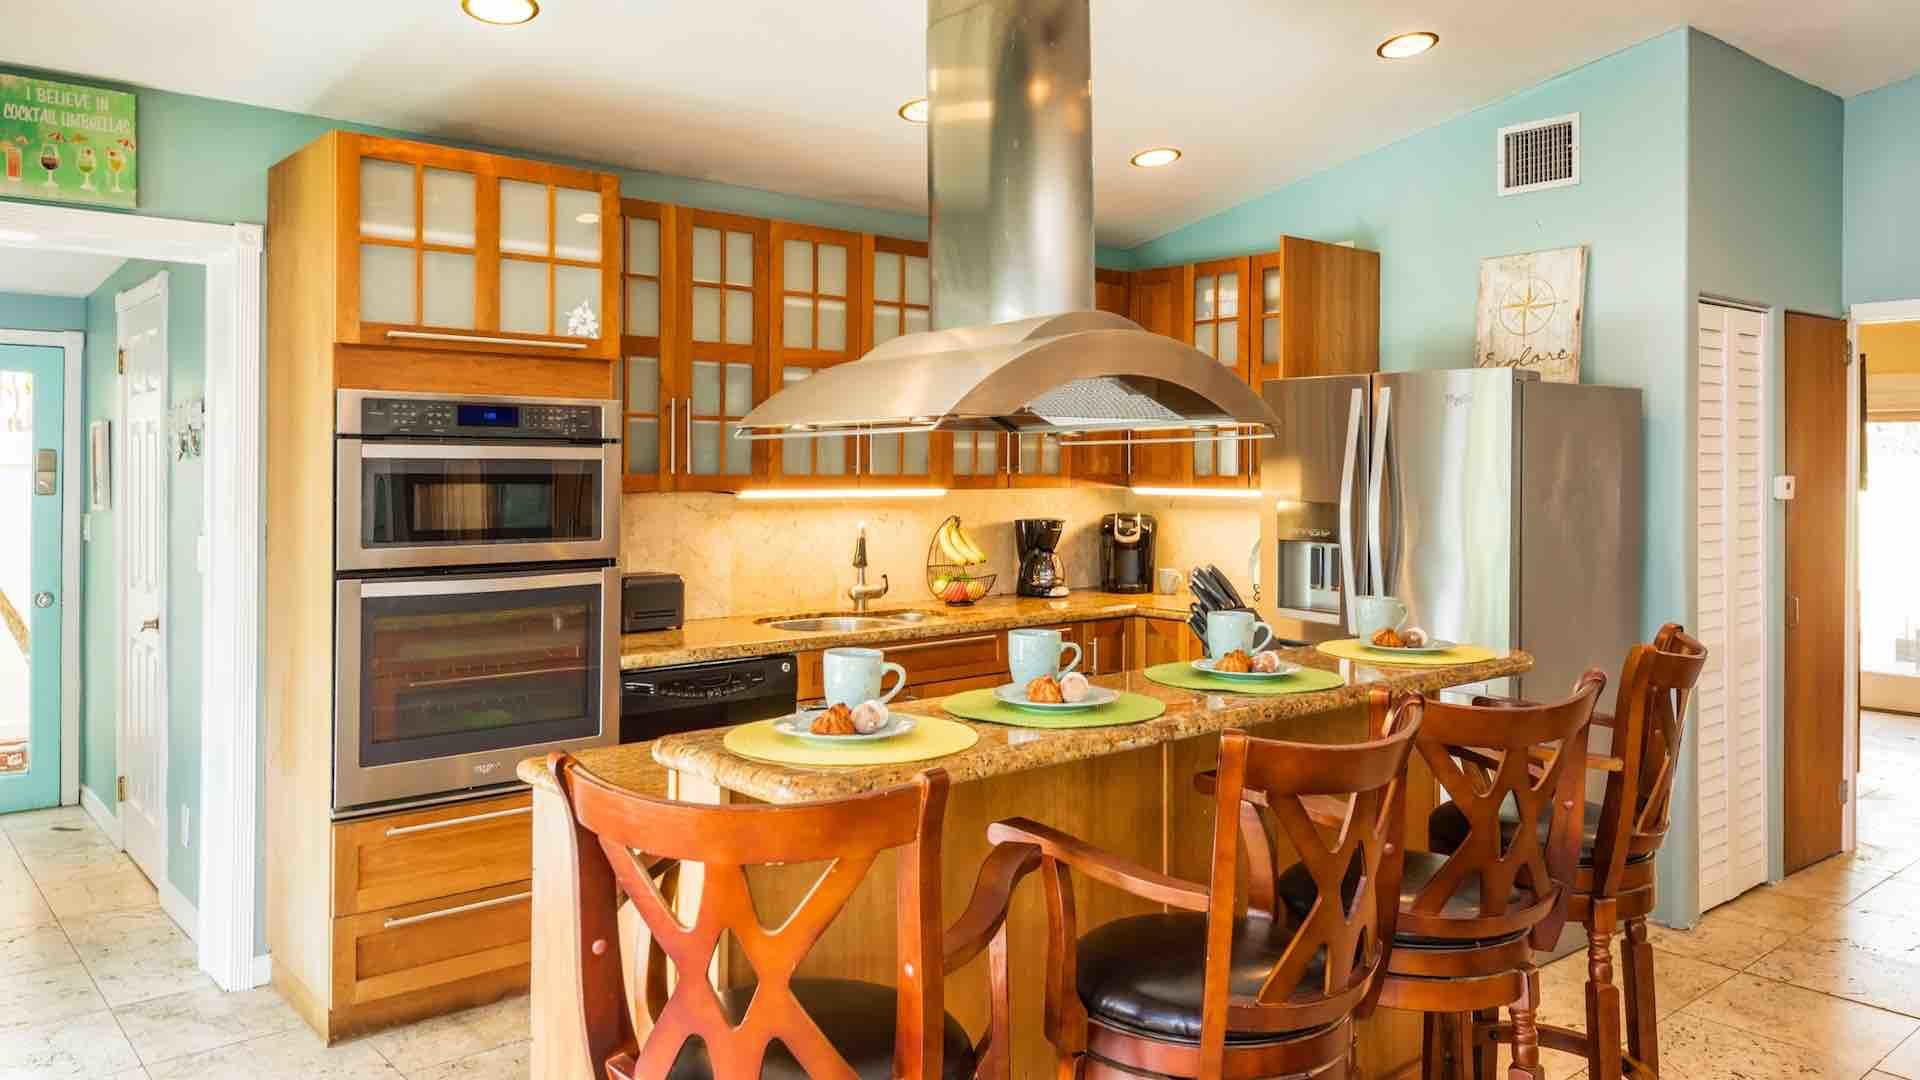 The kitchen is fully equipped with everything needed to prepare a meal...